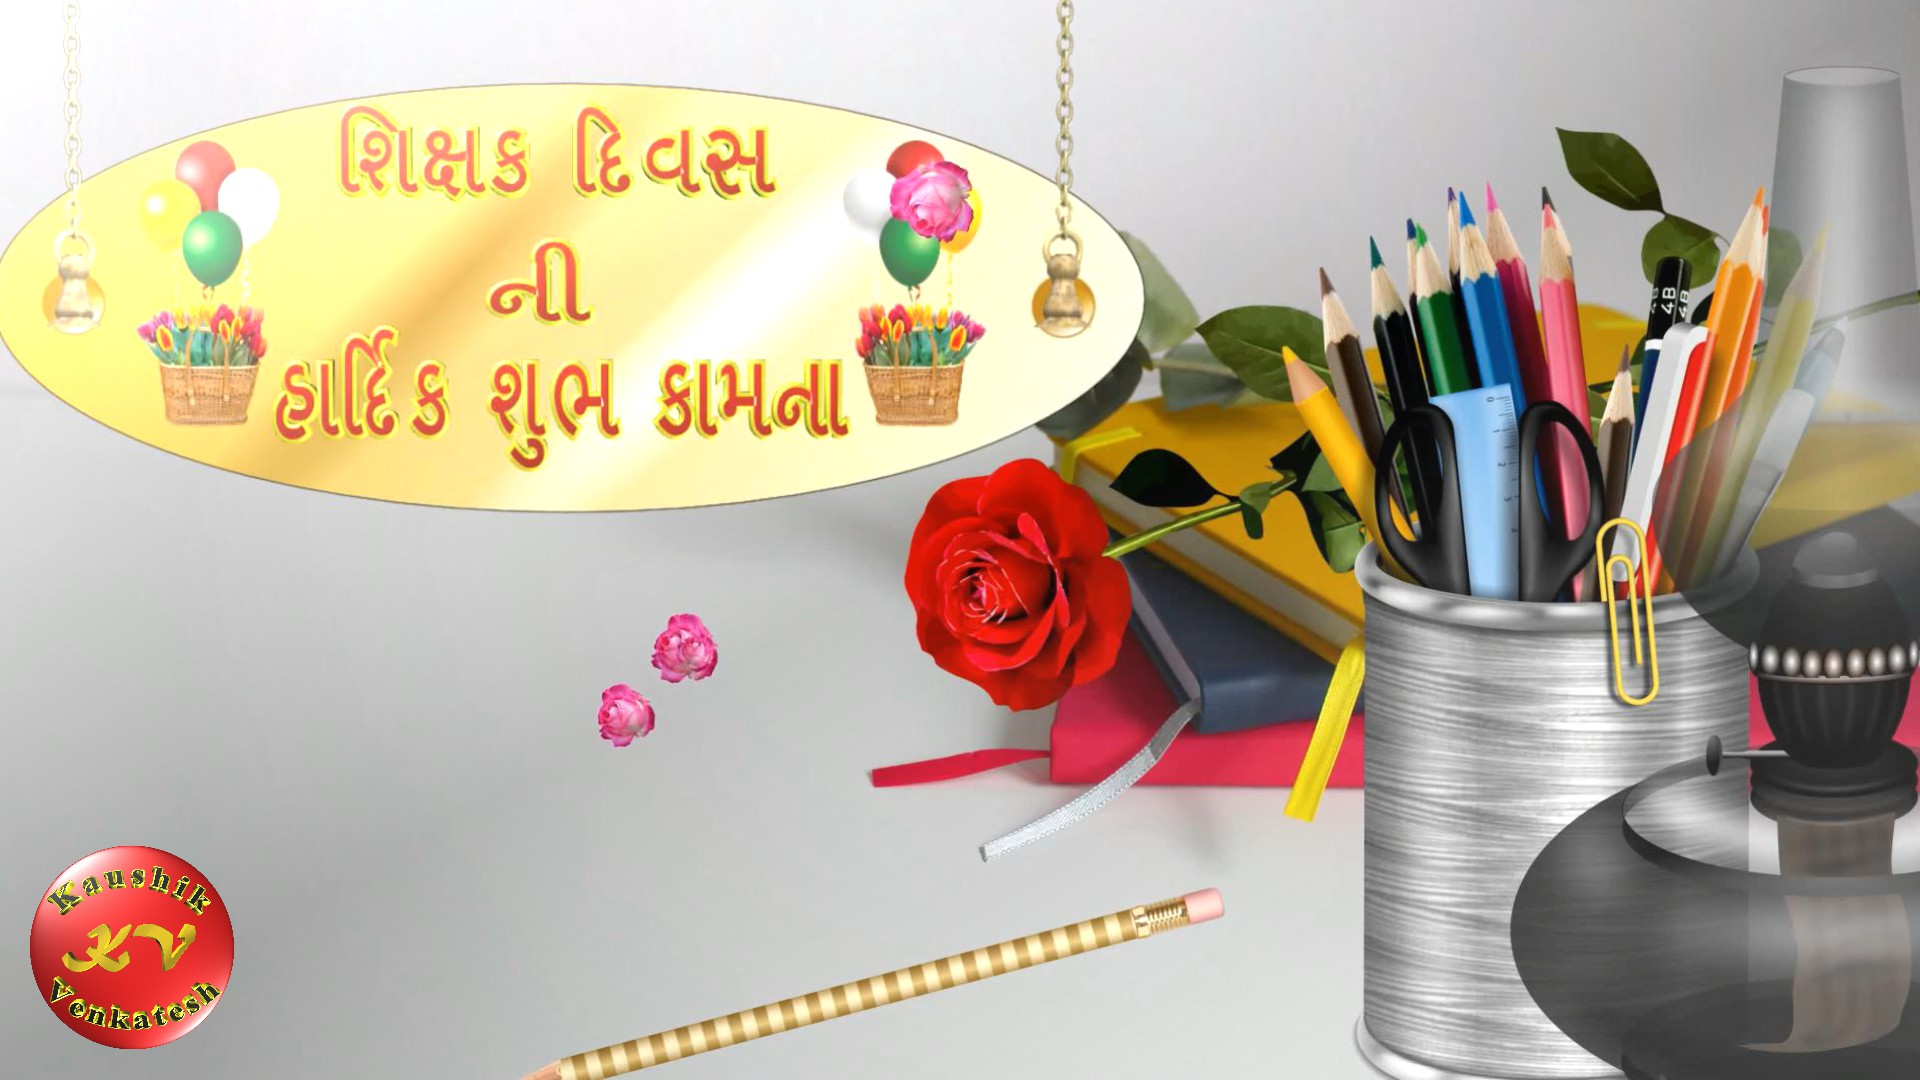 Greetings Image for September 5th (Teacher's Day) in Gujarati Font